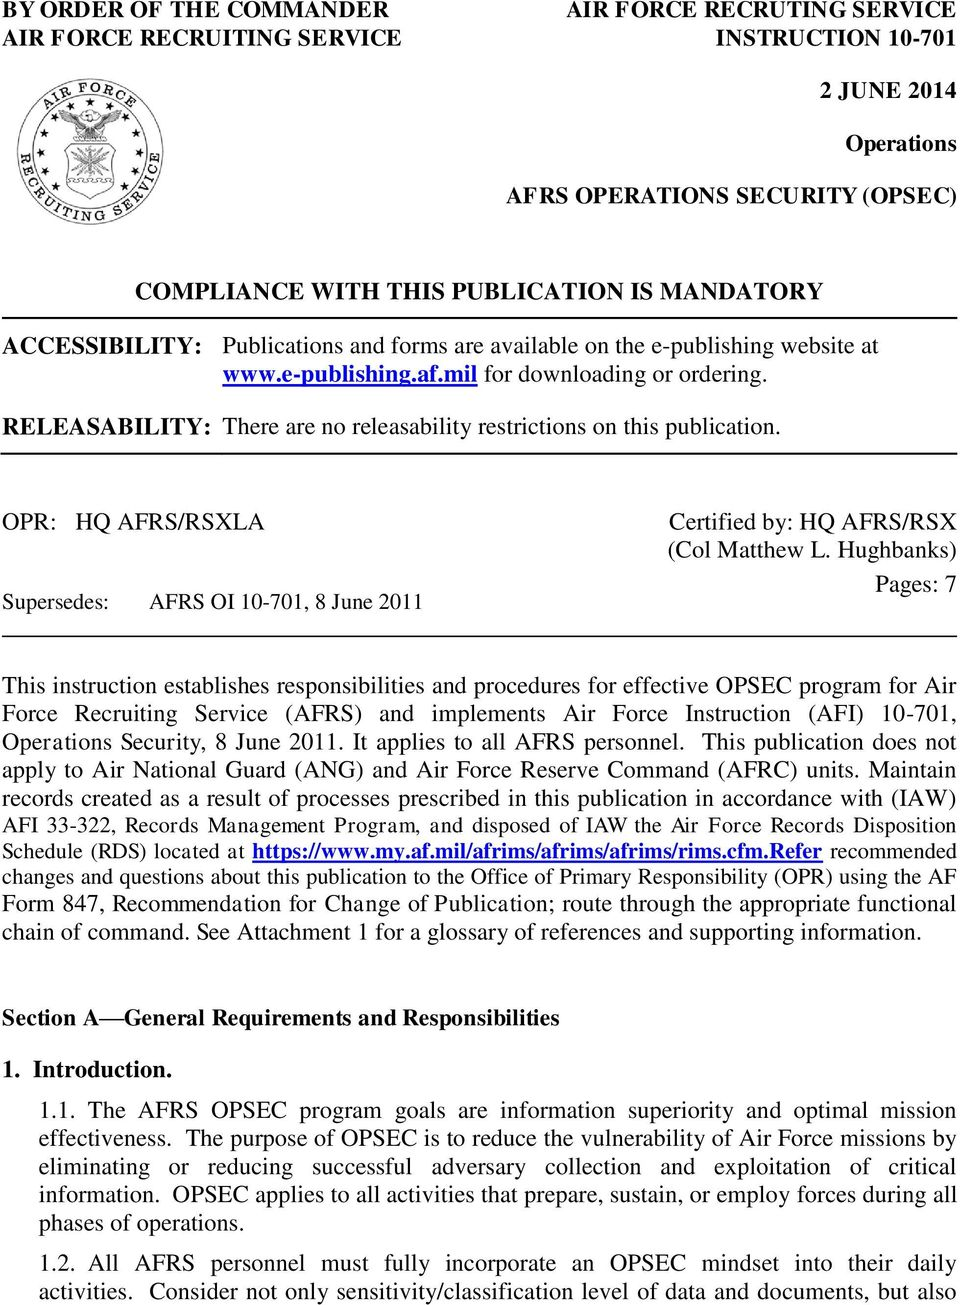 RELEASABILITY: There are no releasability restrictions on this publication. OPR: HQ AFRS/RSXLA Supersedes: AFRS OI 10-701, 8 June 2011 Certified by: HQ AFRS/RSX (Col Matthew L.